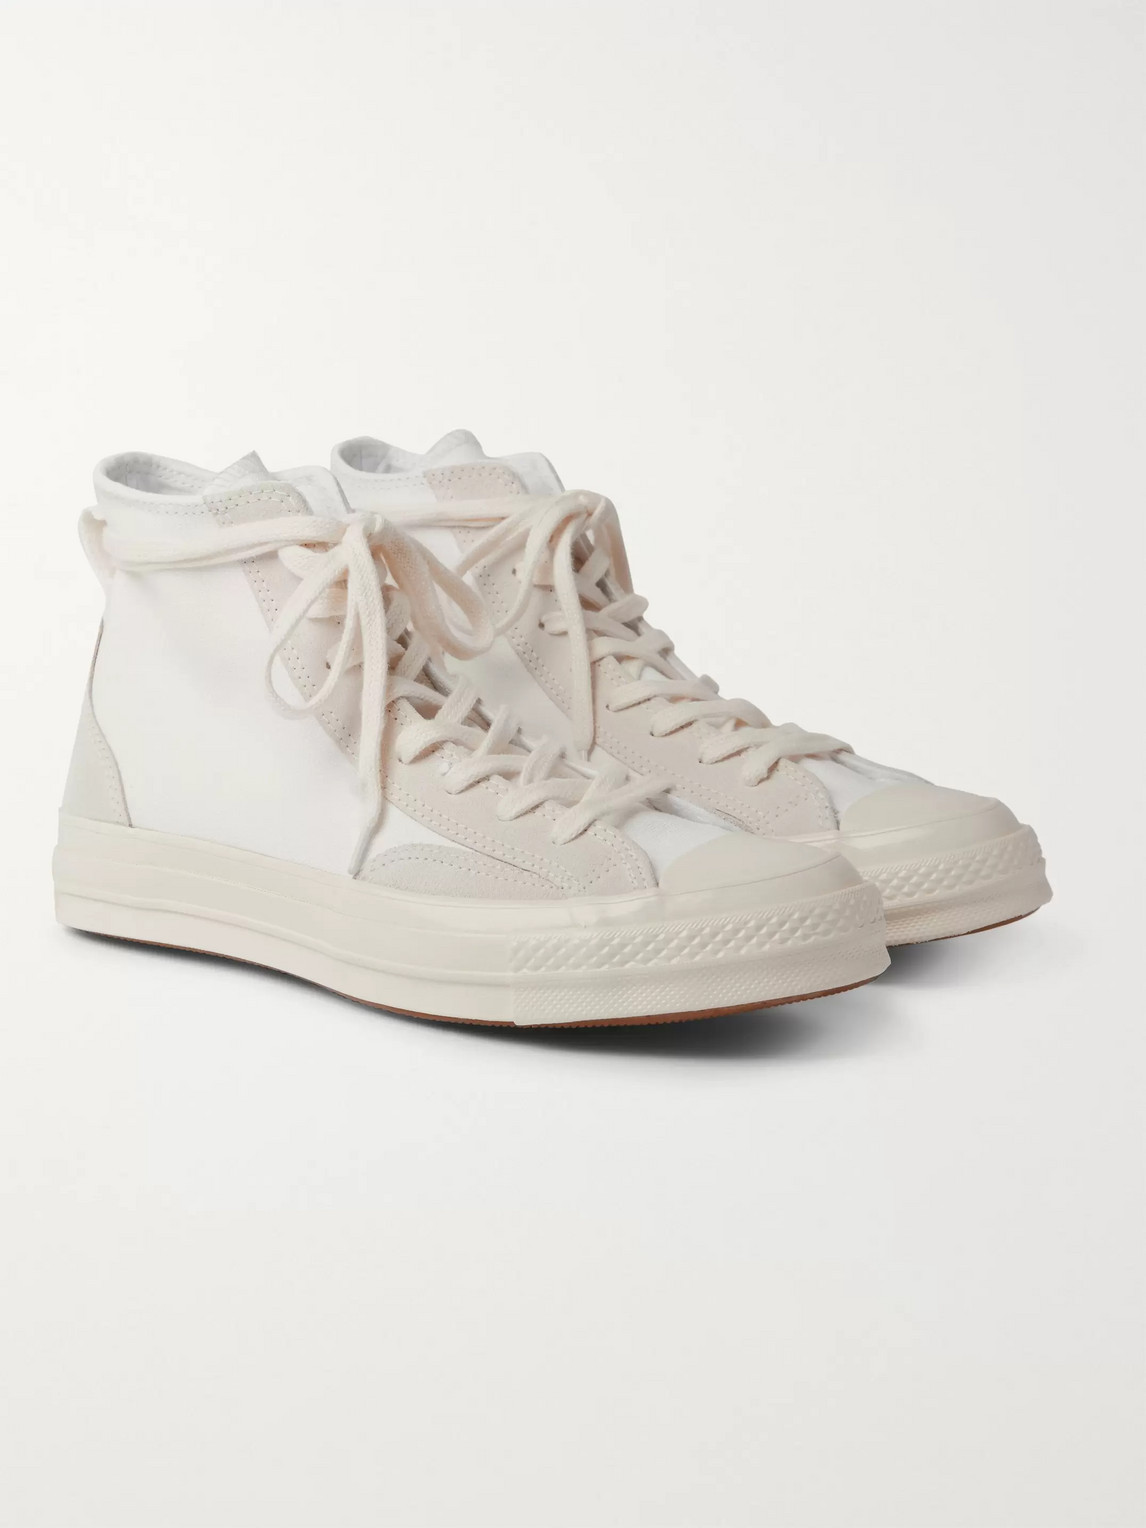 Converse Chuck 70 Final Club Suede-trimmed Organic Canvas High-top Sneakers In White